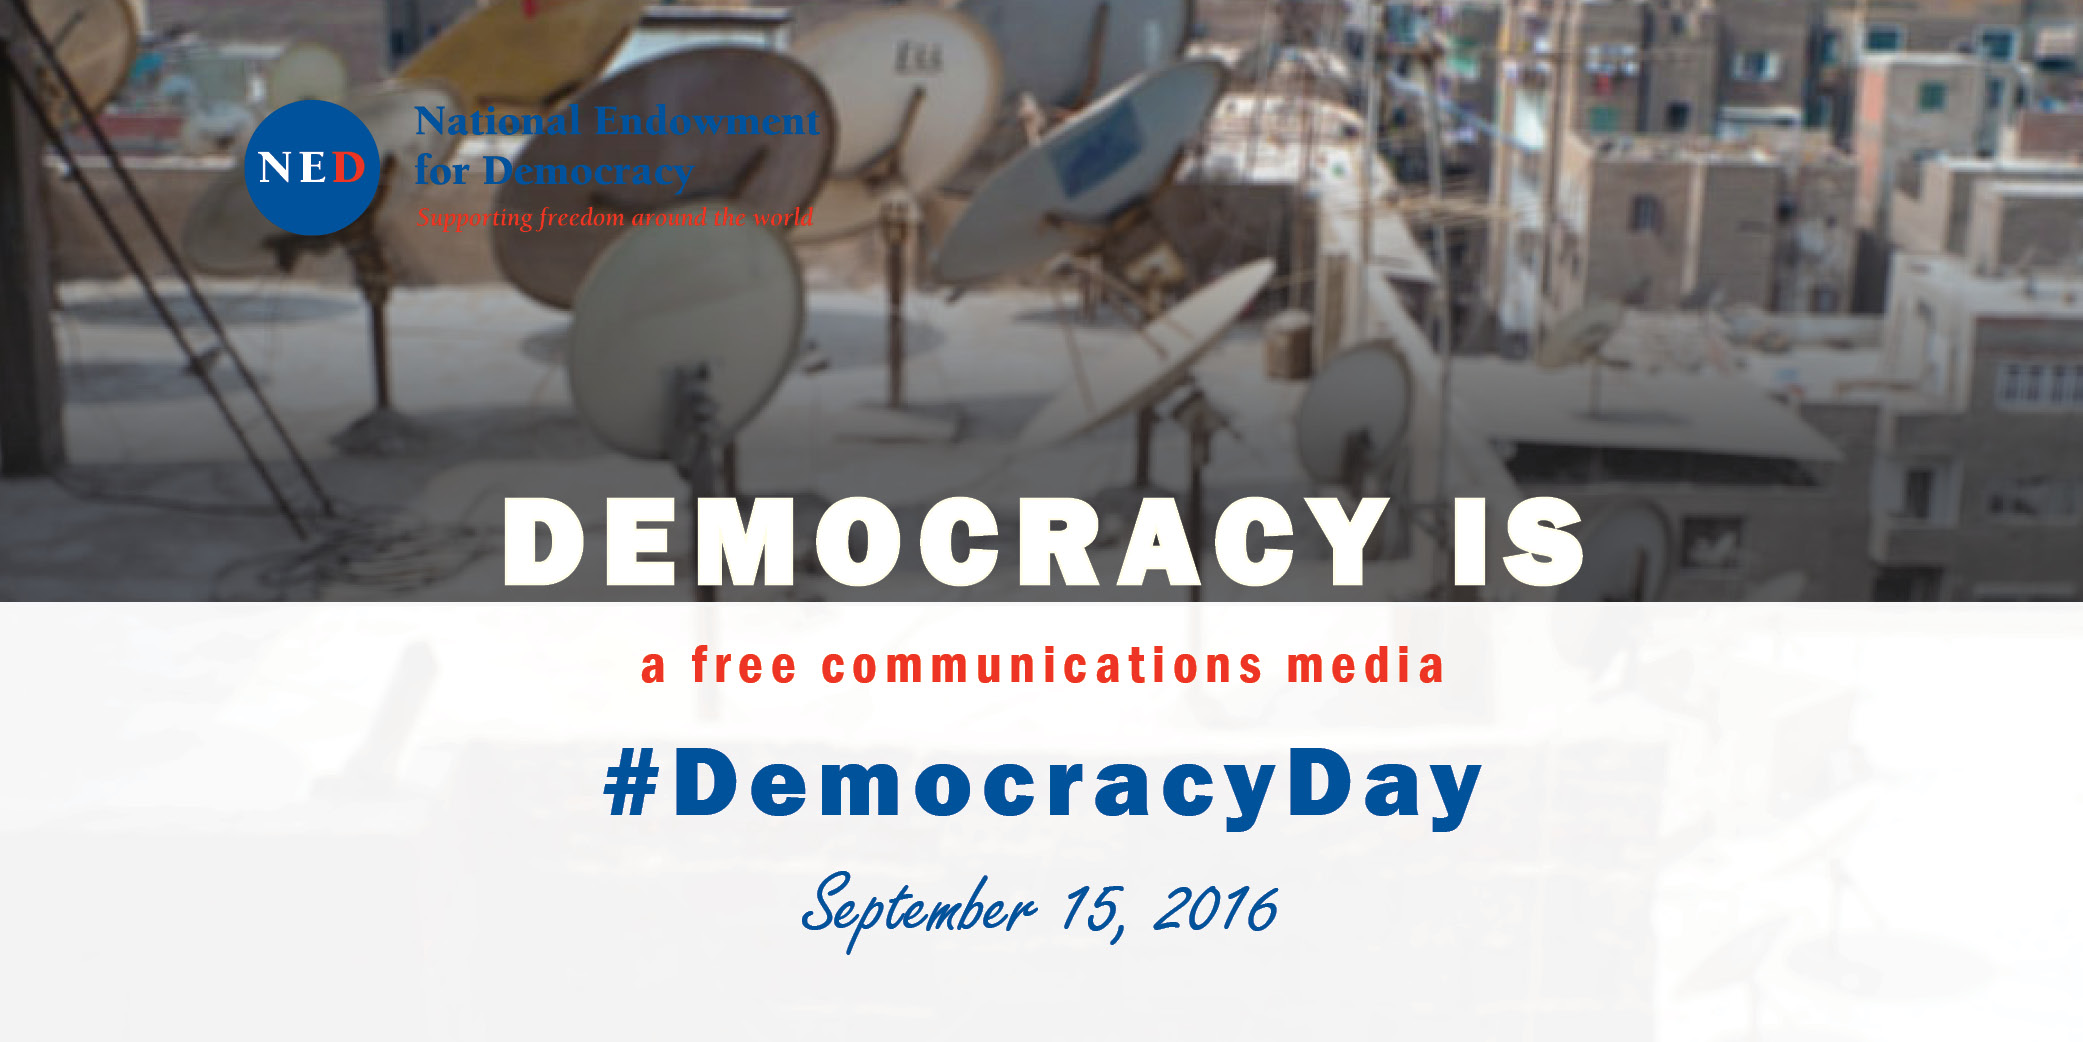 Democracy Day Free Media